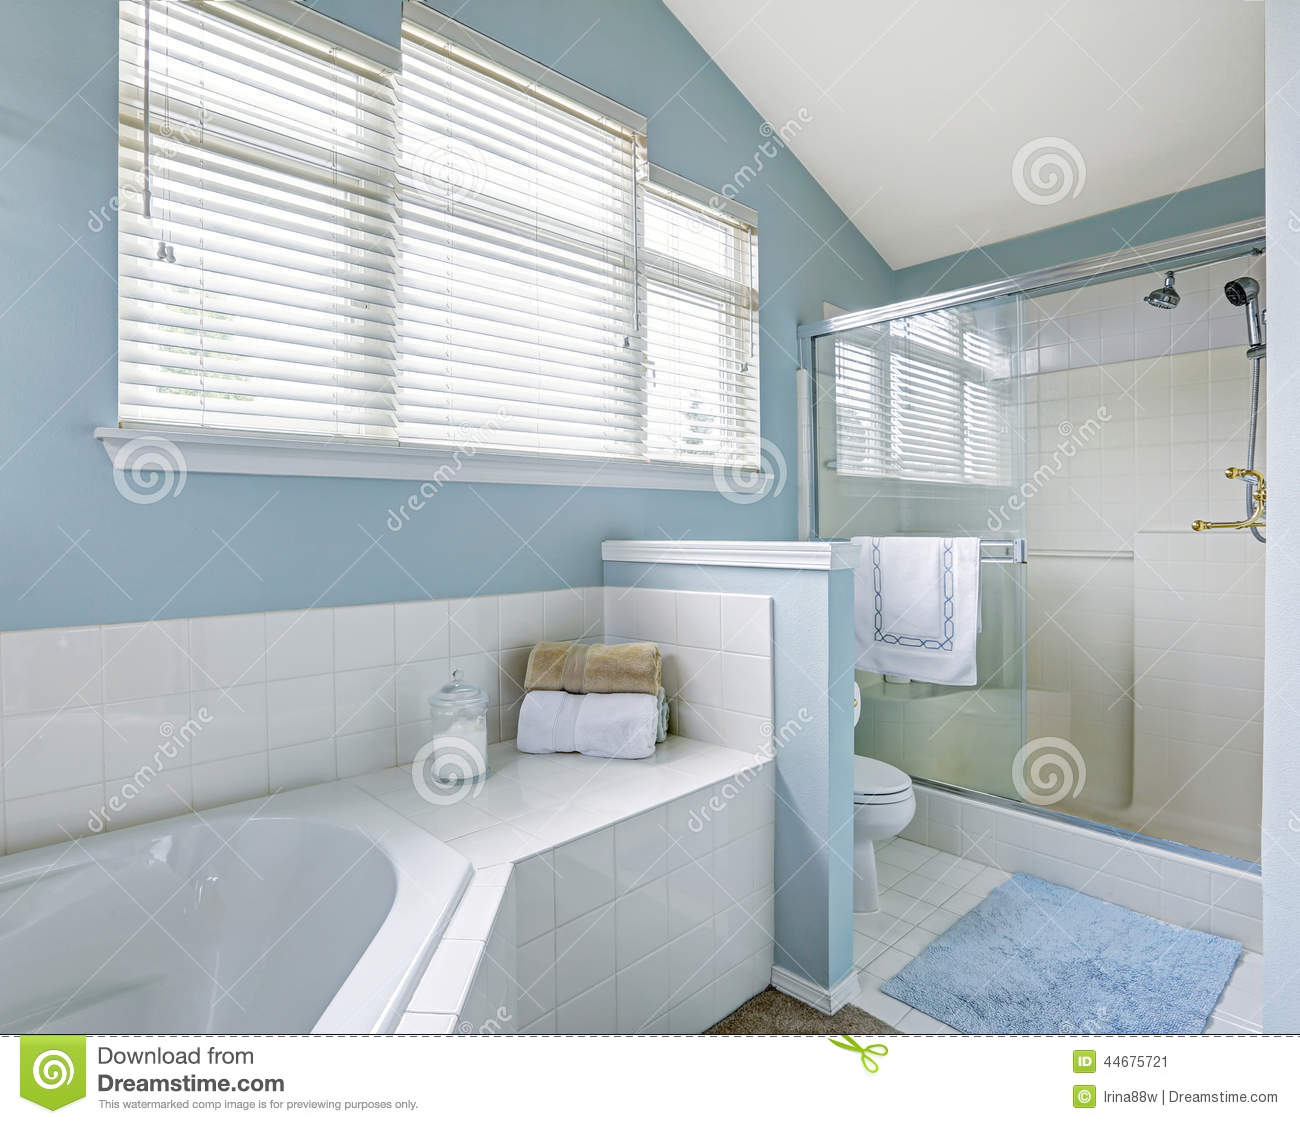 Refreshing Bathroom Interior In Light Blue Tone Stock Image - Image ...